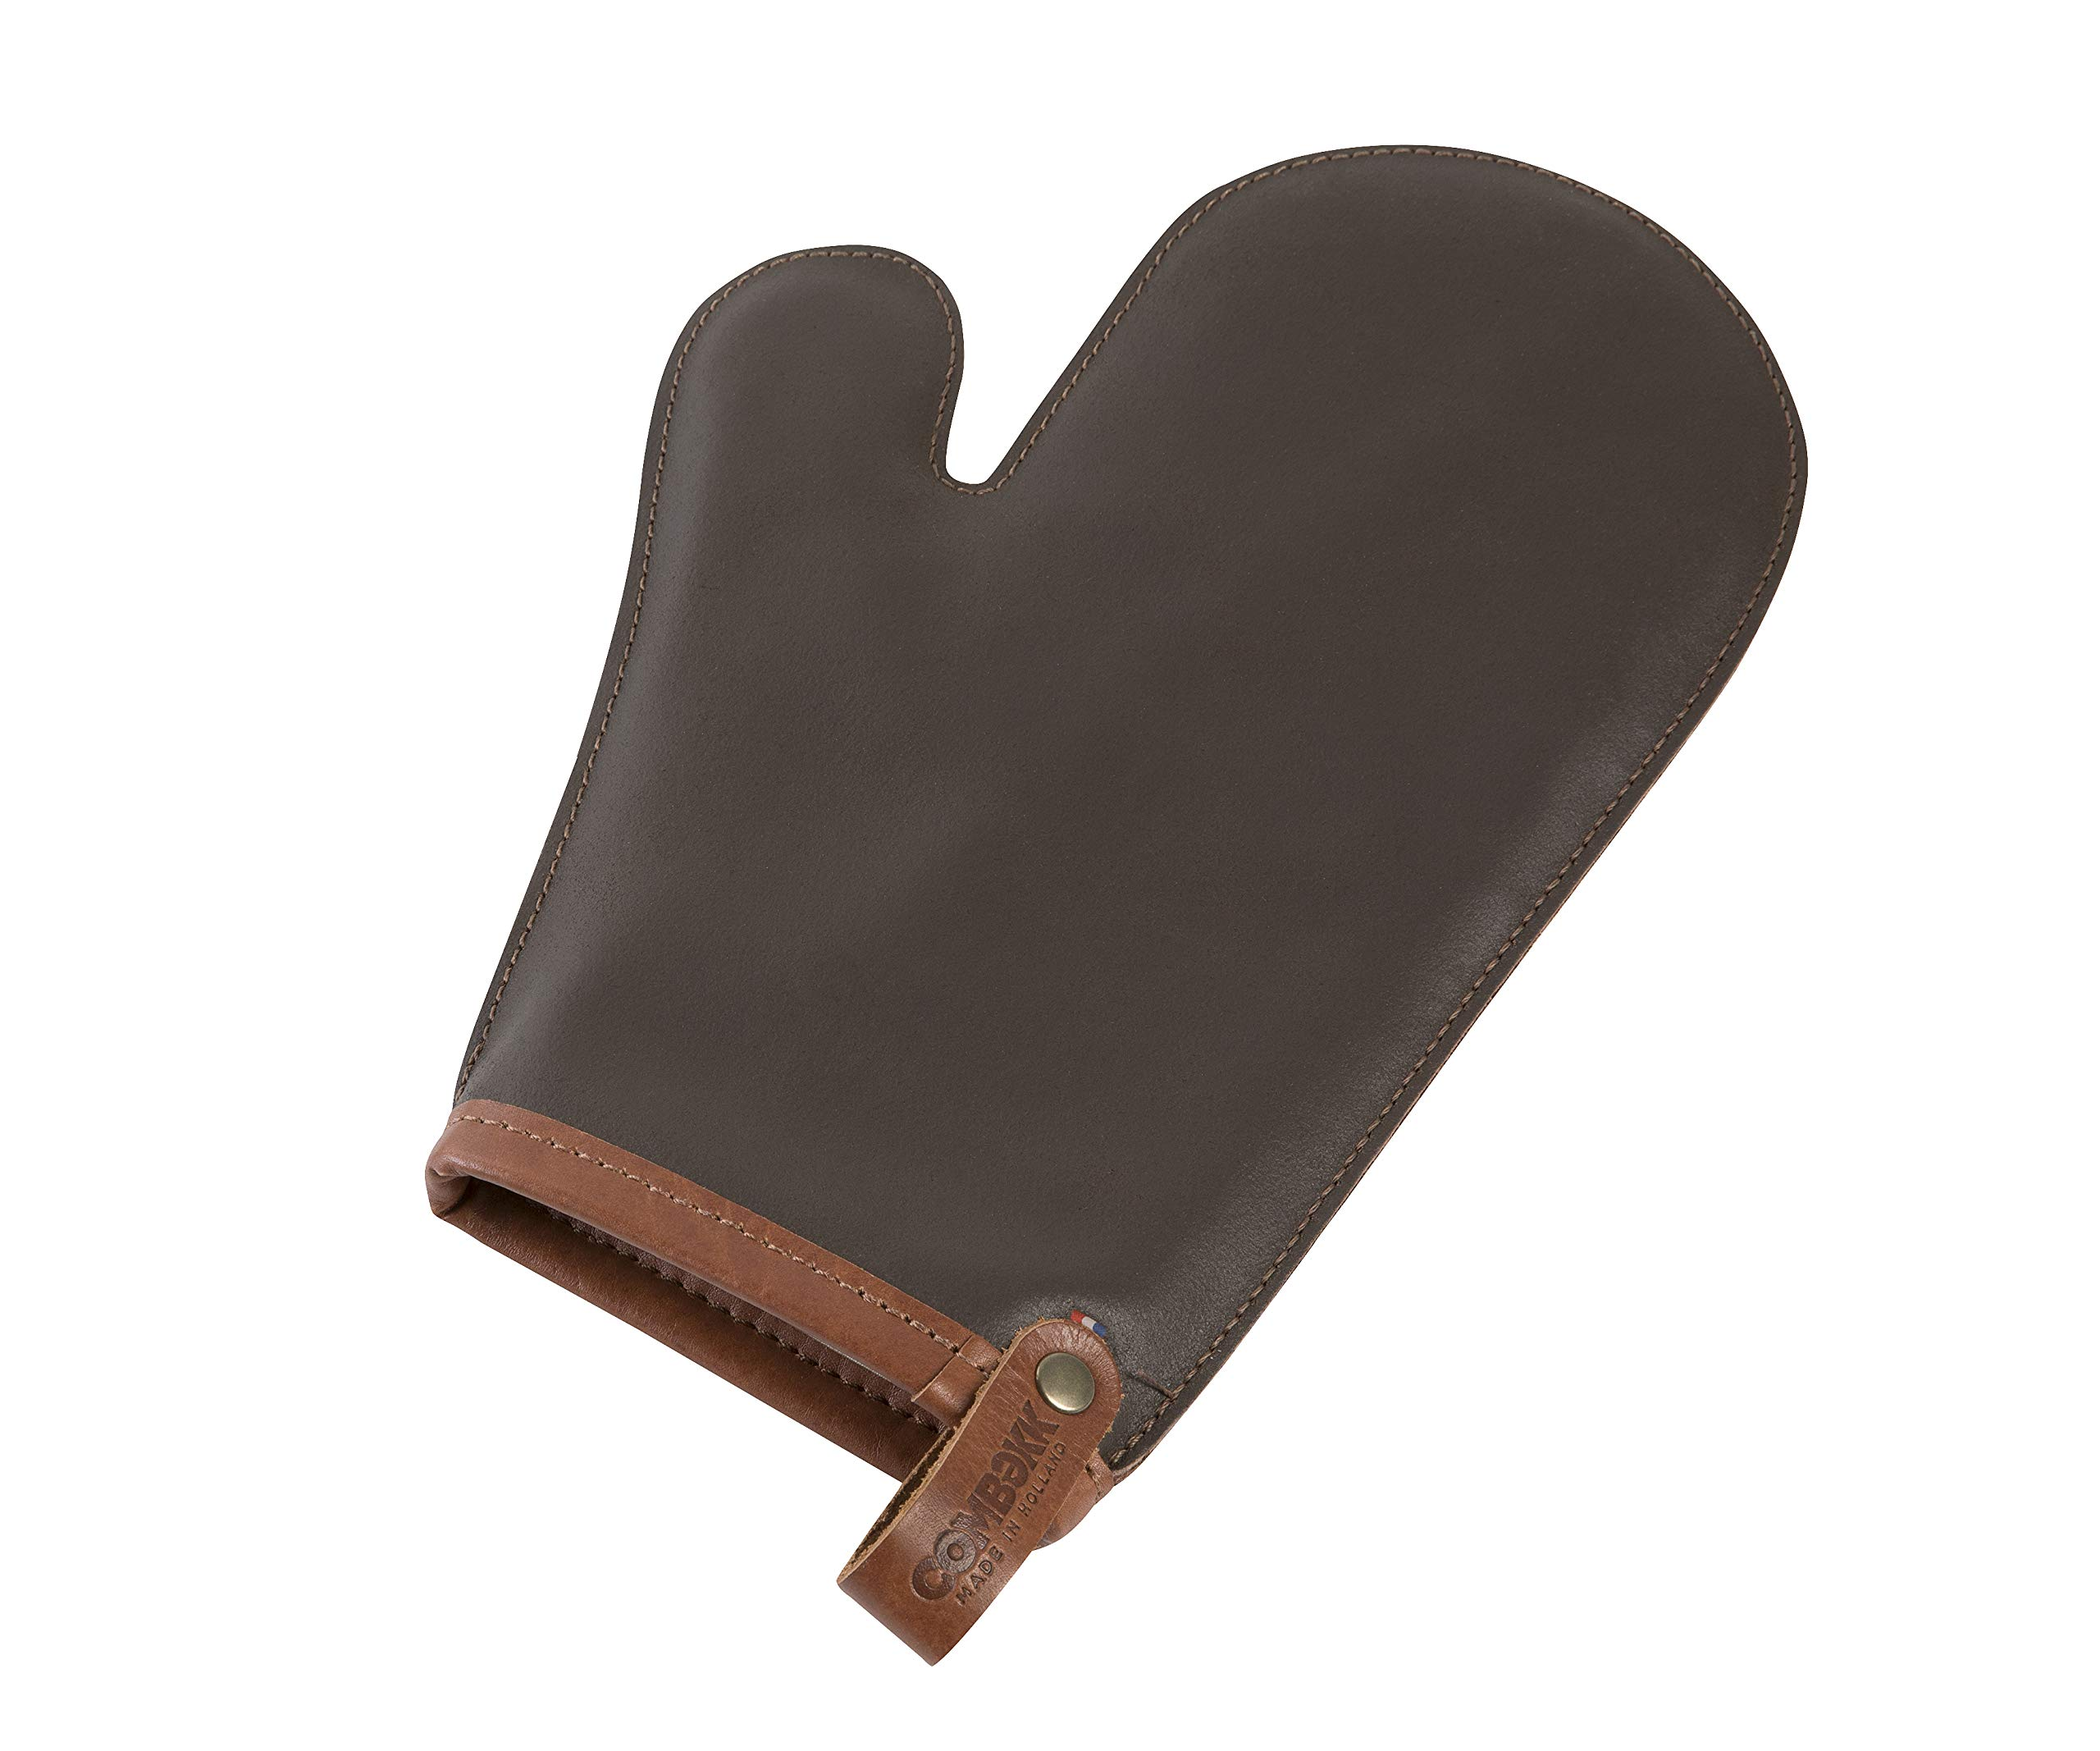 Cuisipro 75500122 Combekk Leather Dutch Oven Glove, one size, Brown by Cuisipro